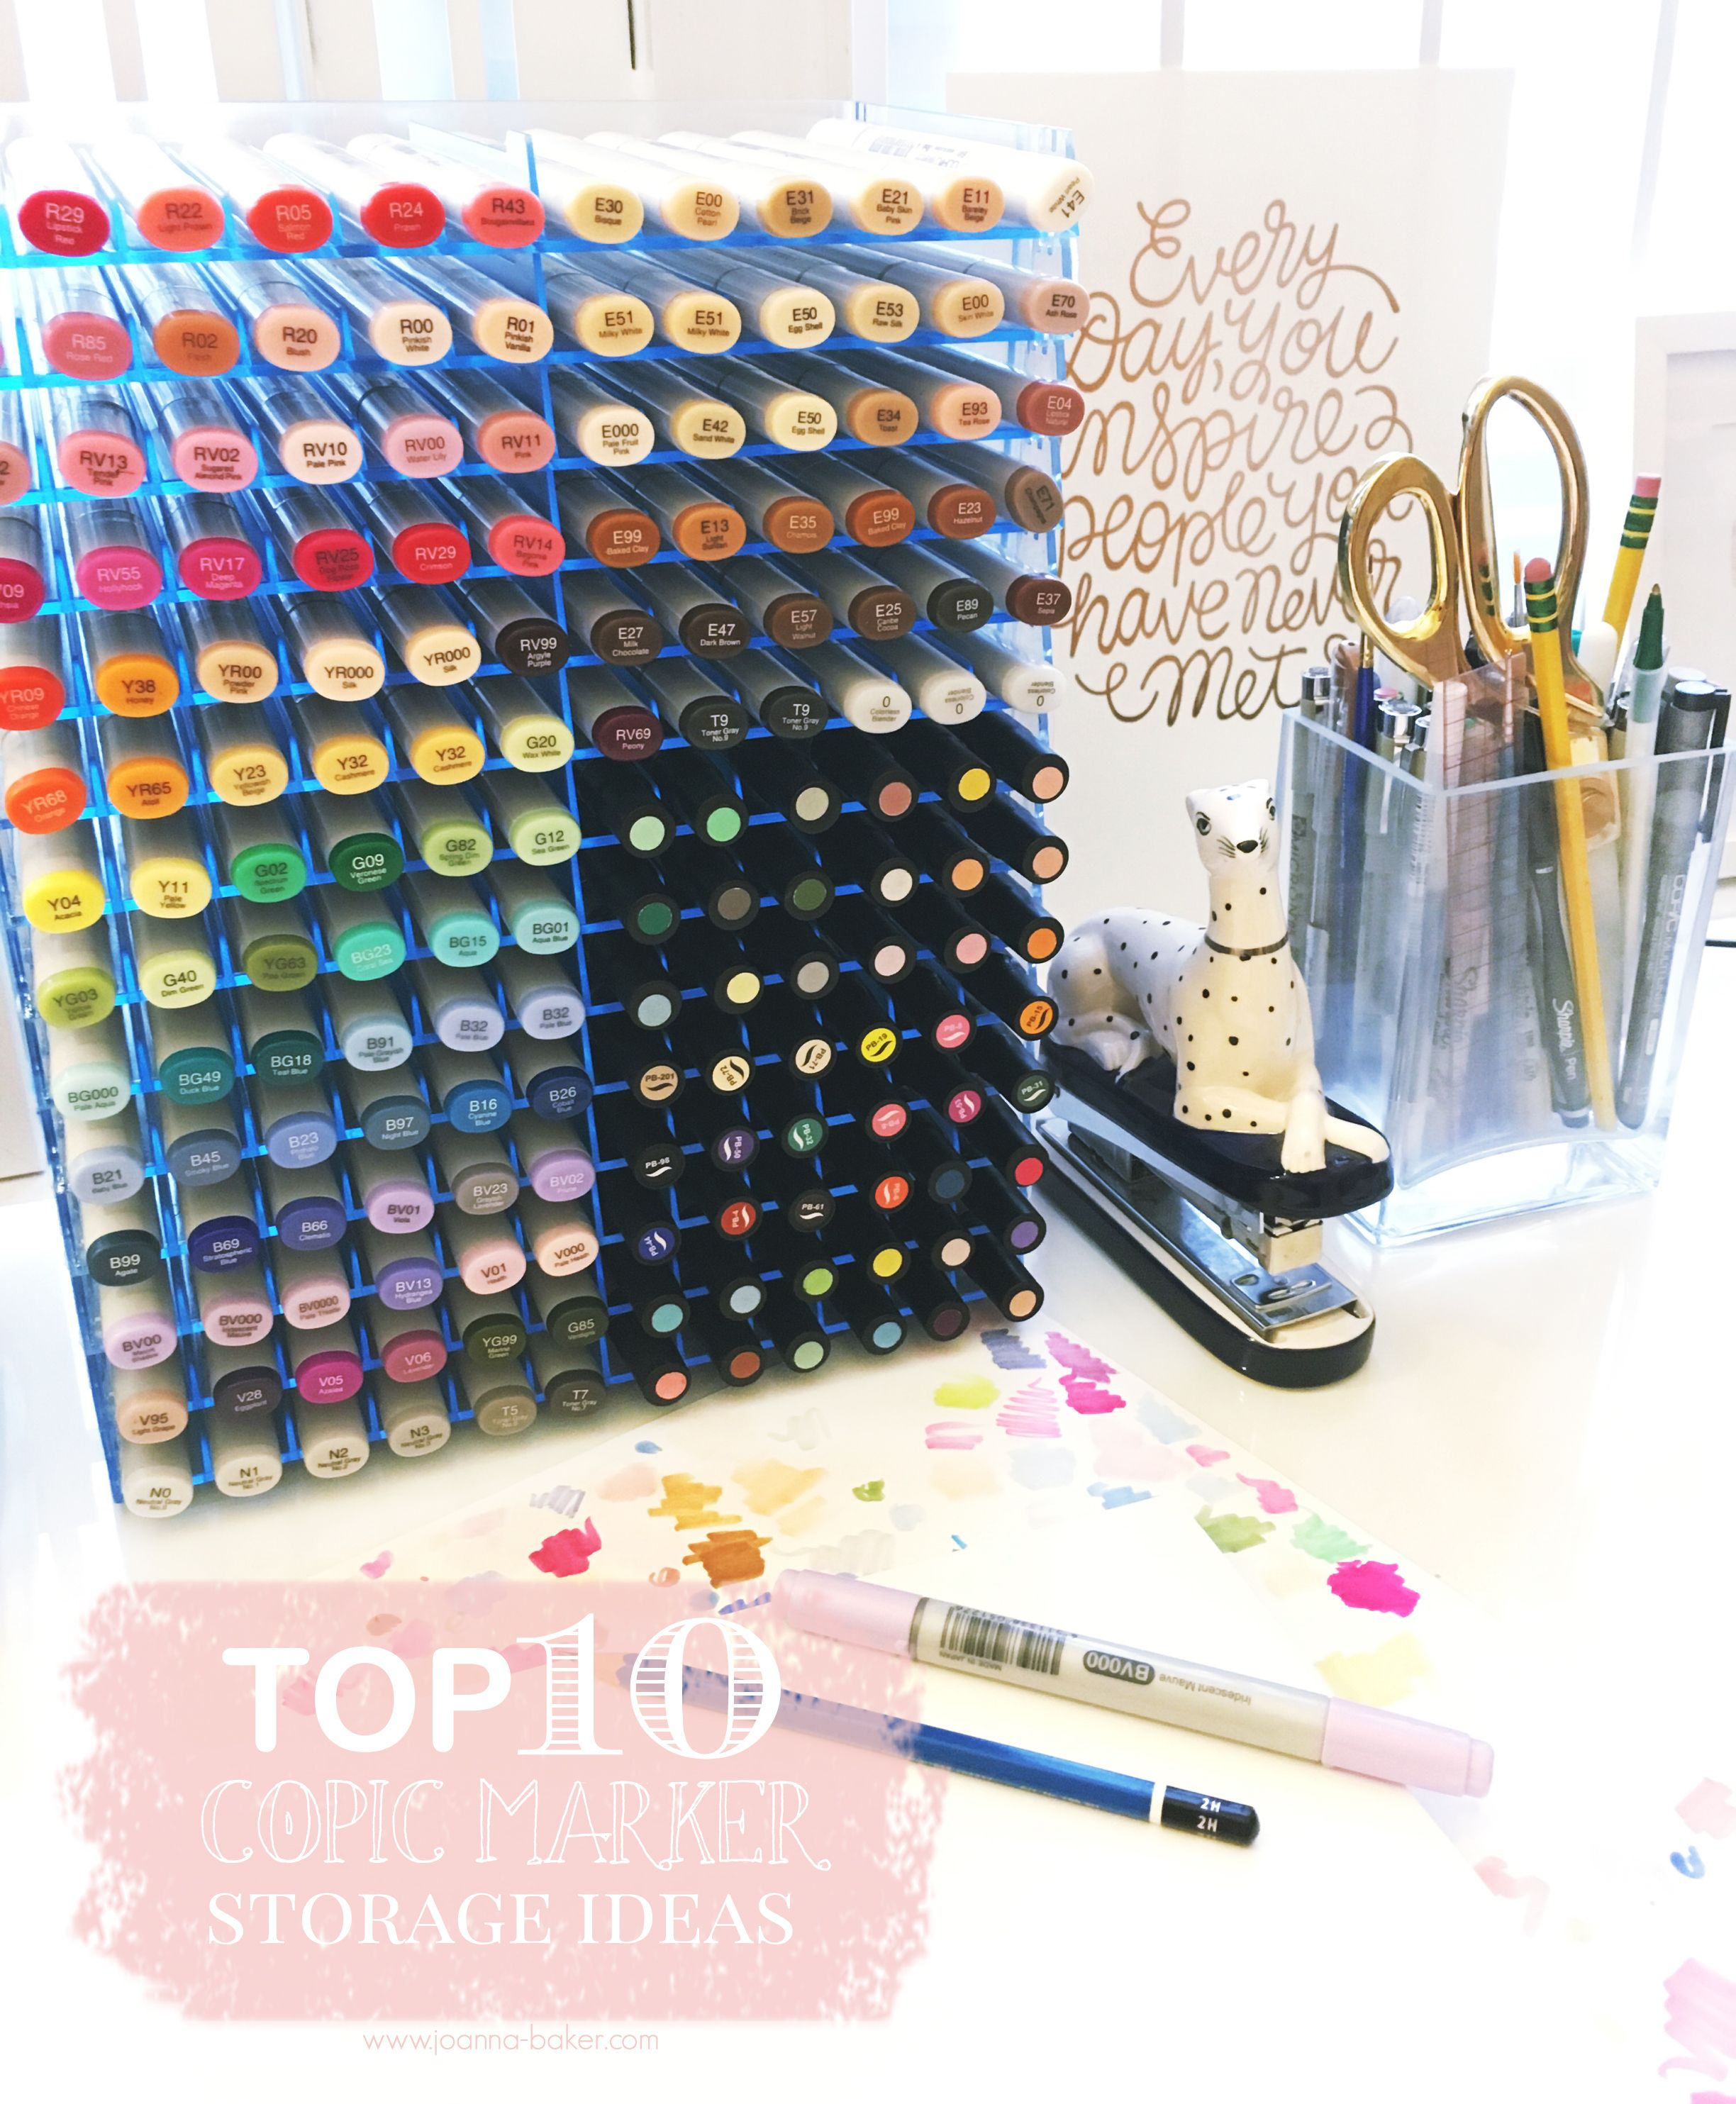 Top 10 Copic Marker Storage Ideas Marker Storage Copic Markers Colored Pencil Storage